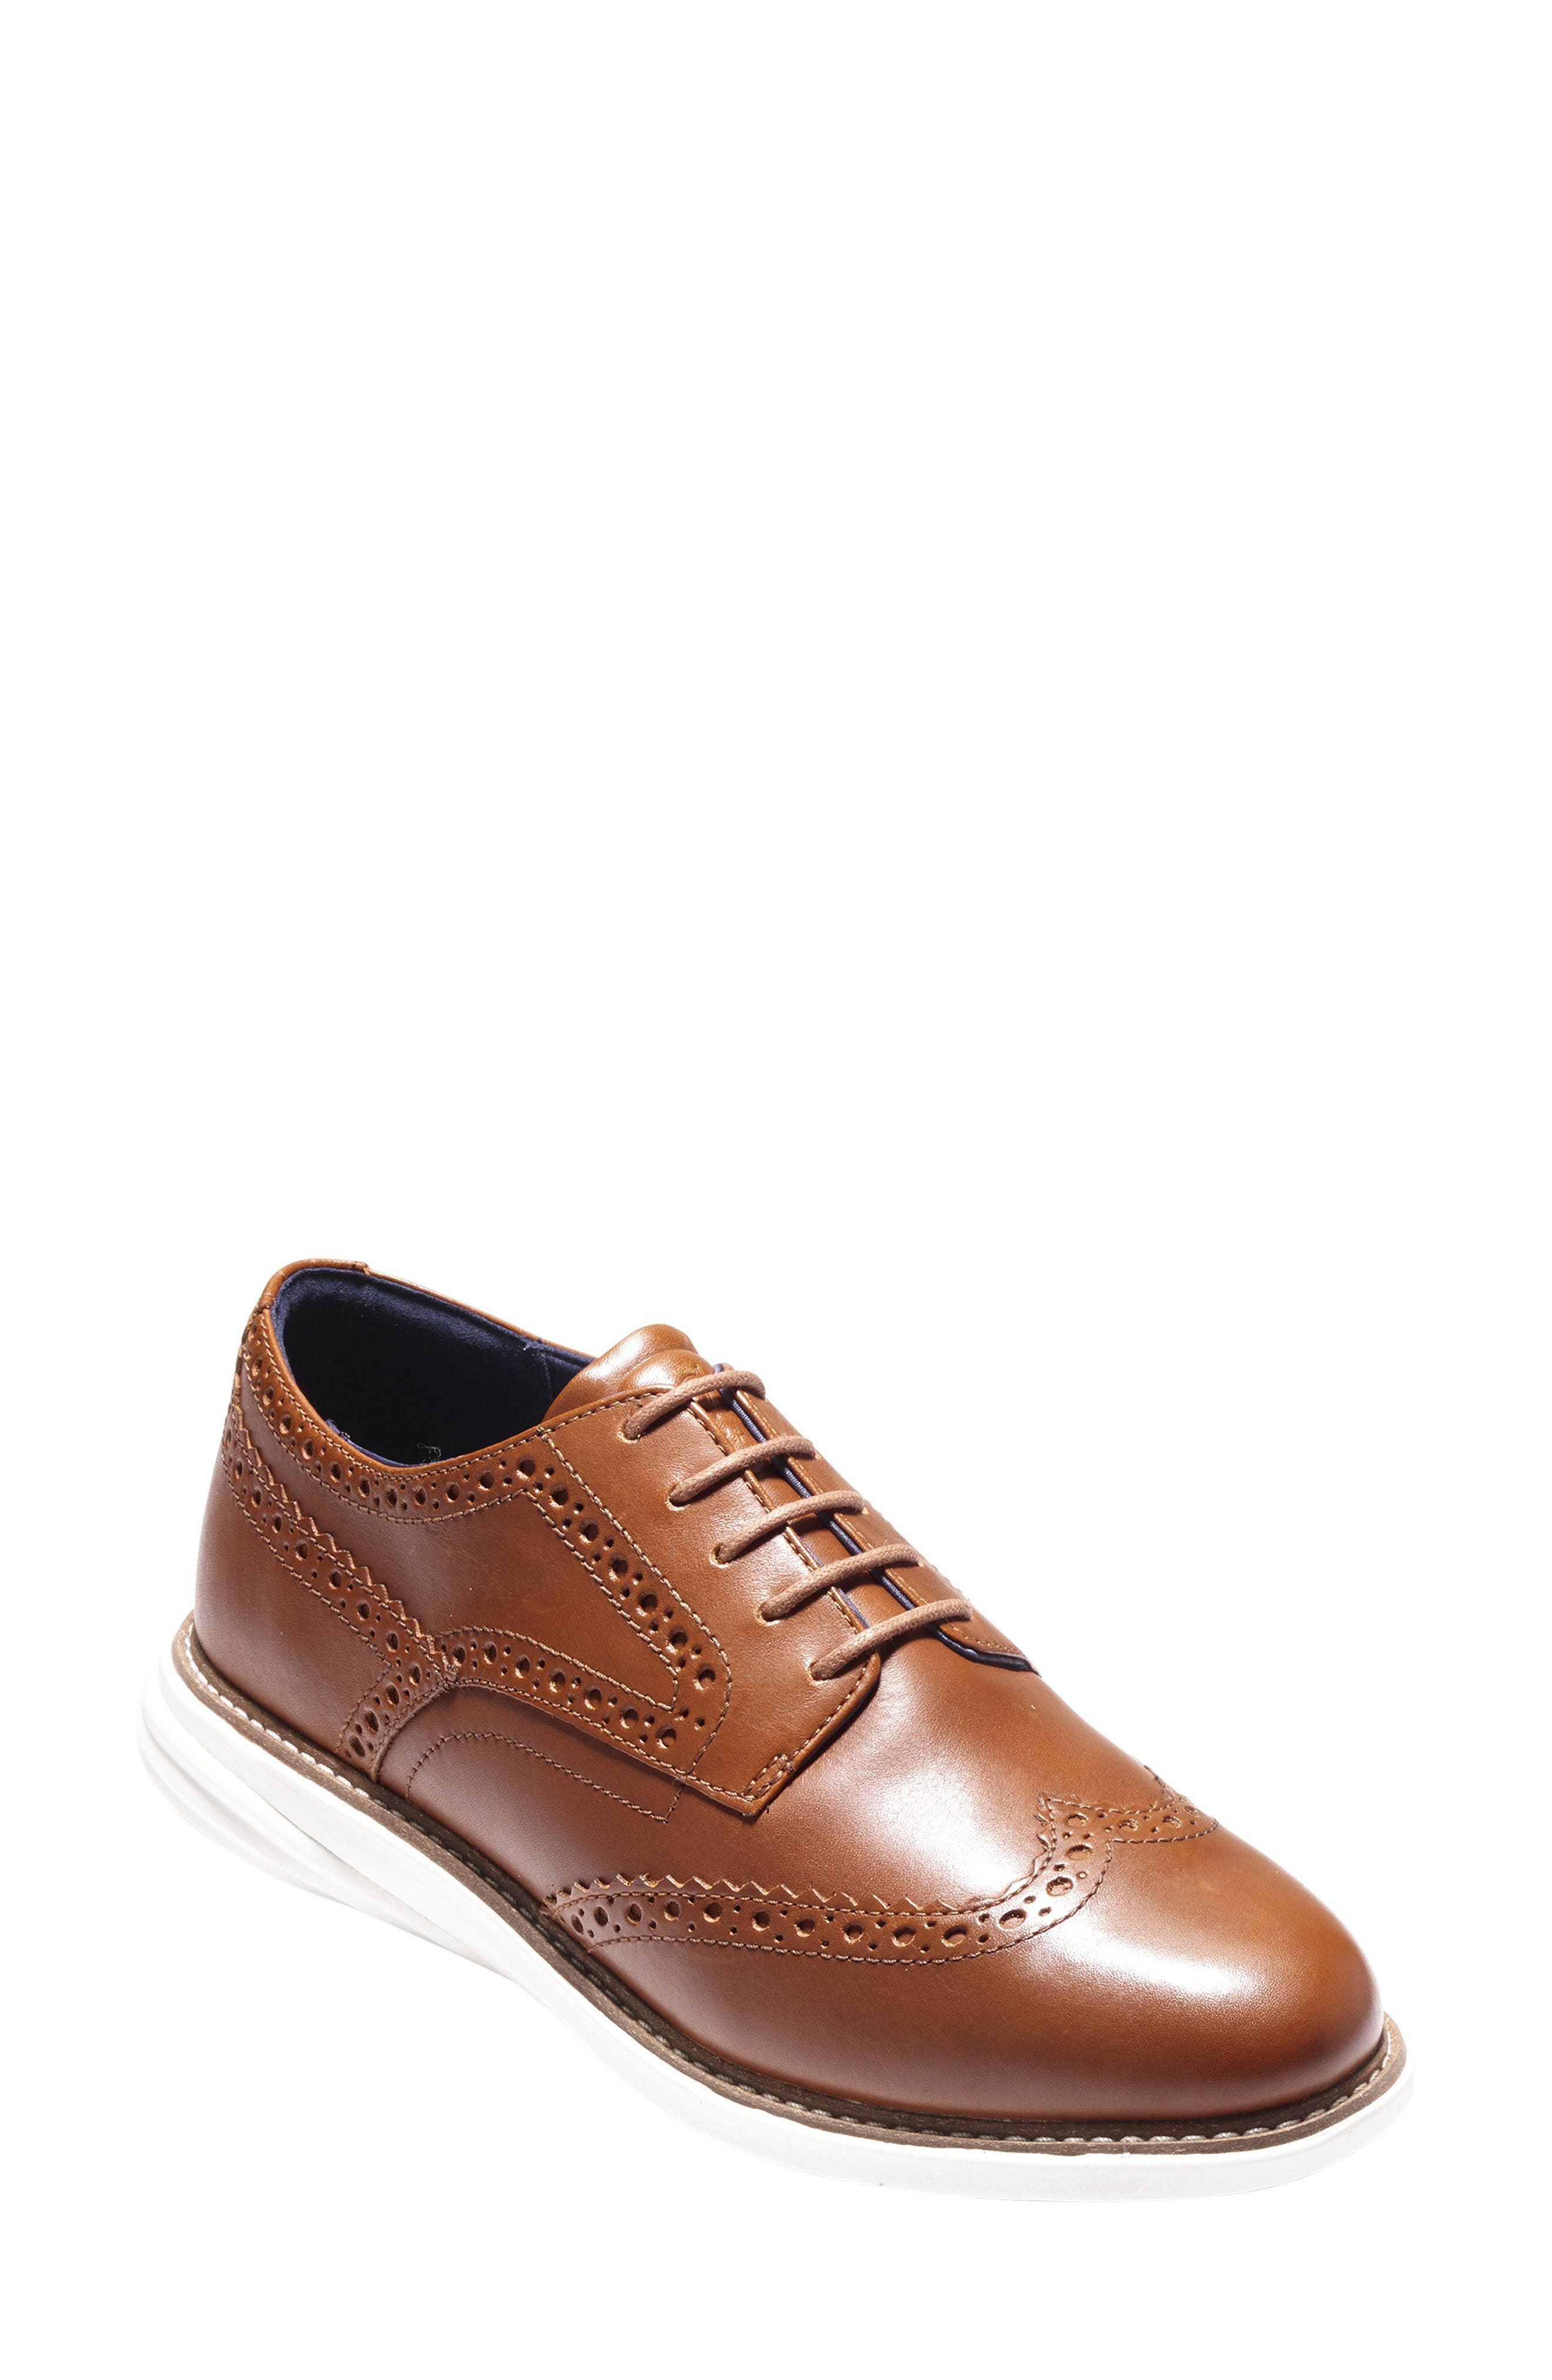 Grandevolution Shortwing Oxford Sneaker,                         Main,                         color, WOODBURY LEATHER